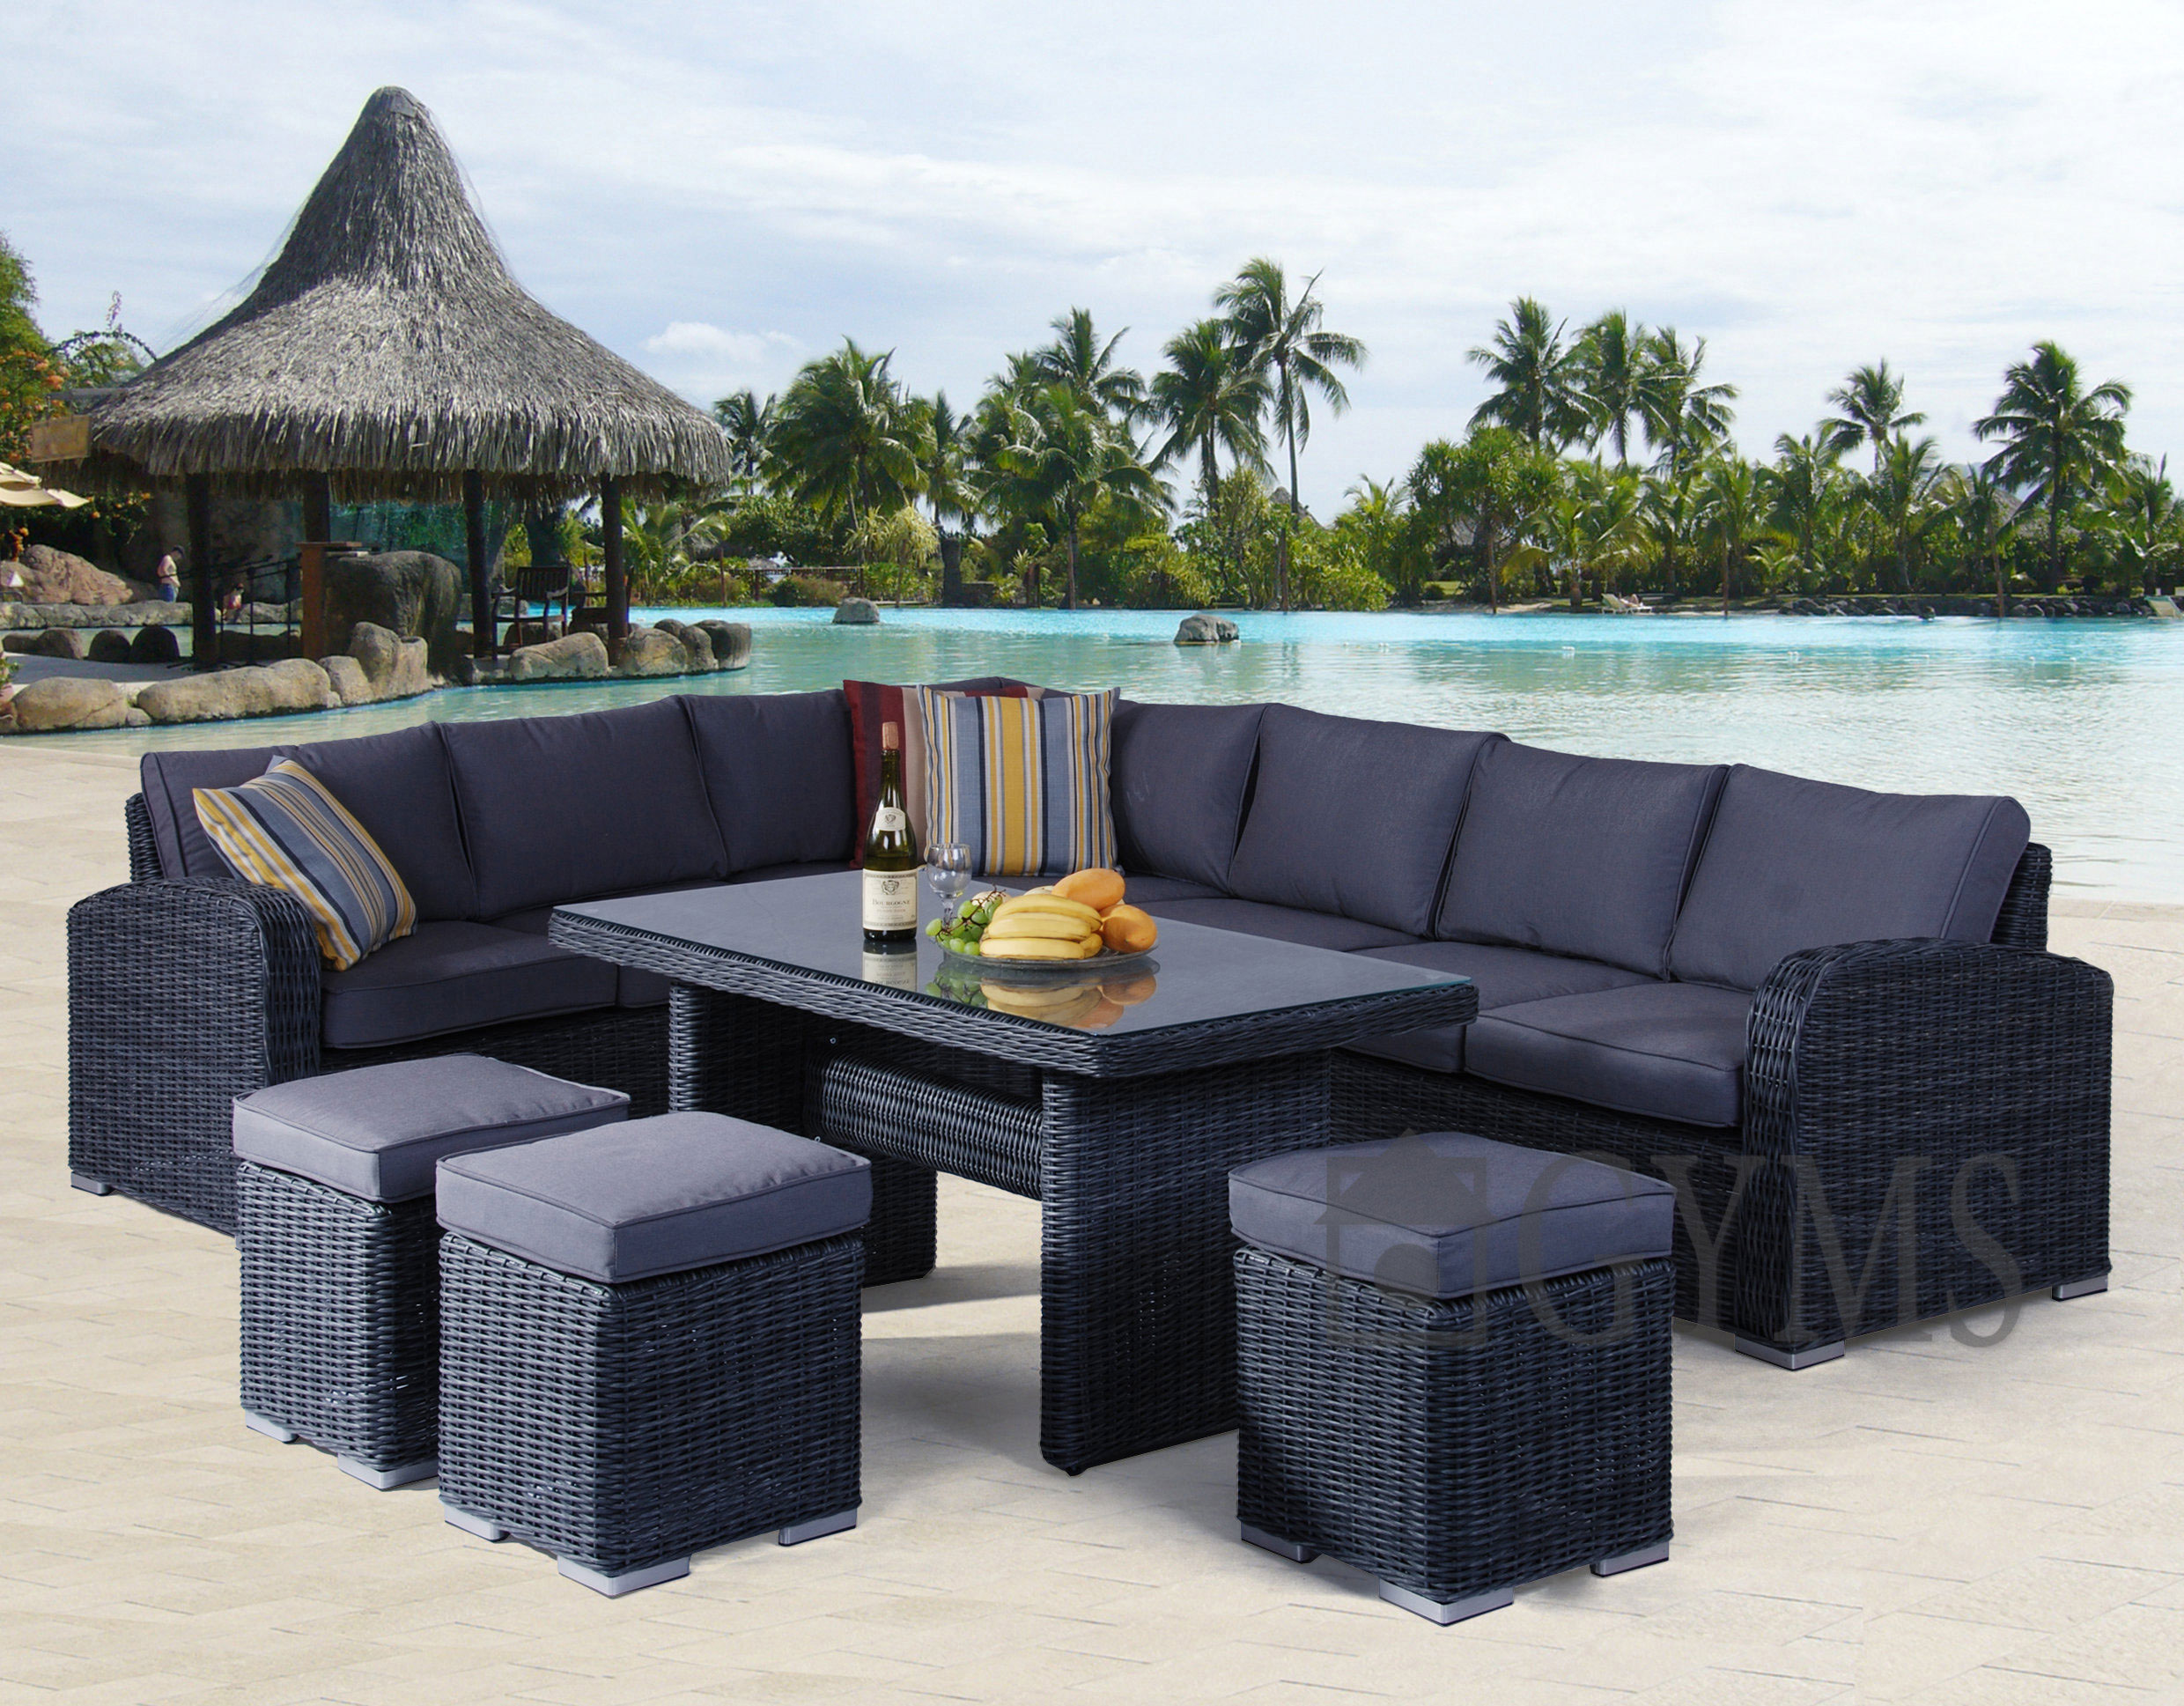 Outdoor living/dining suite